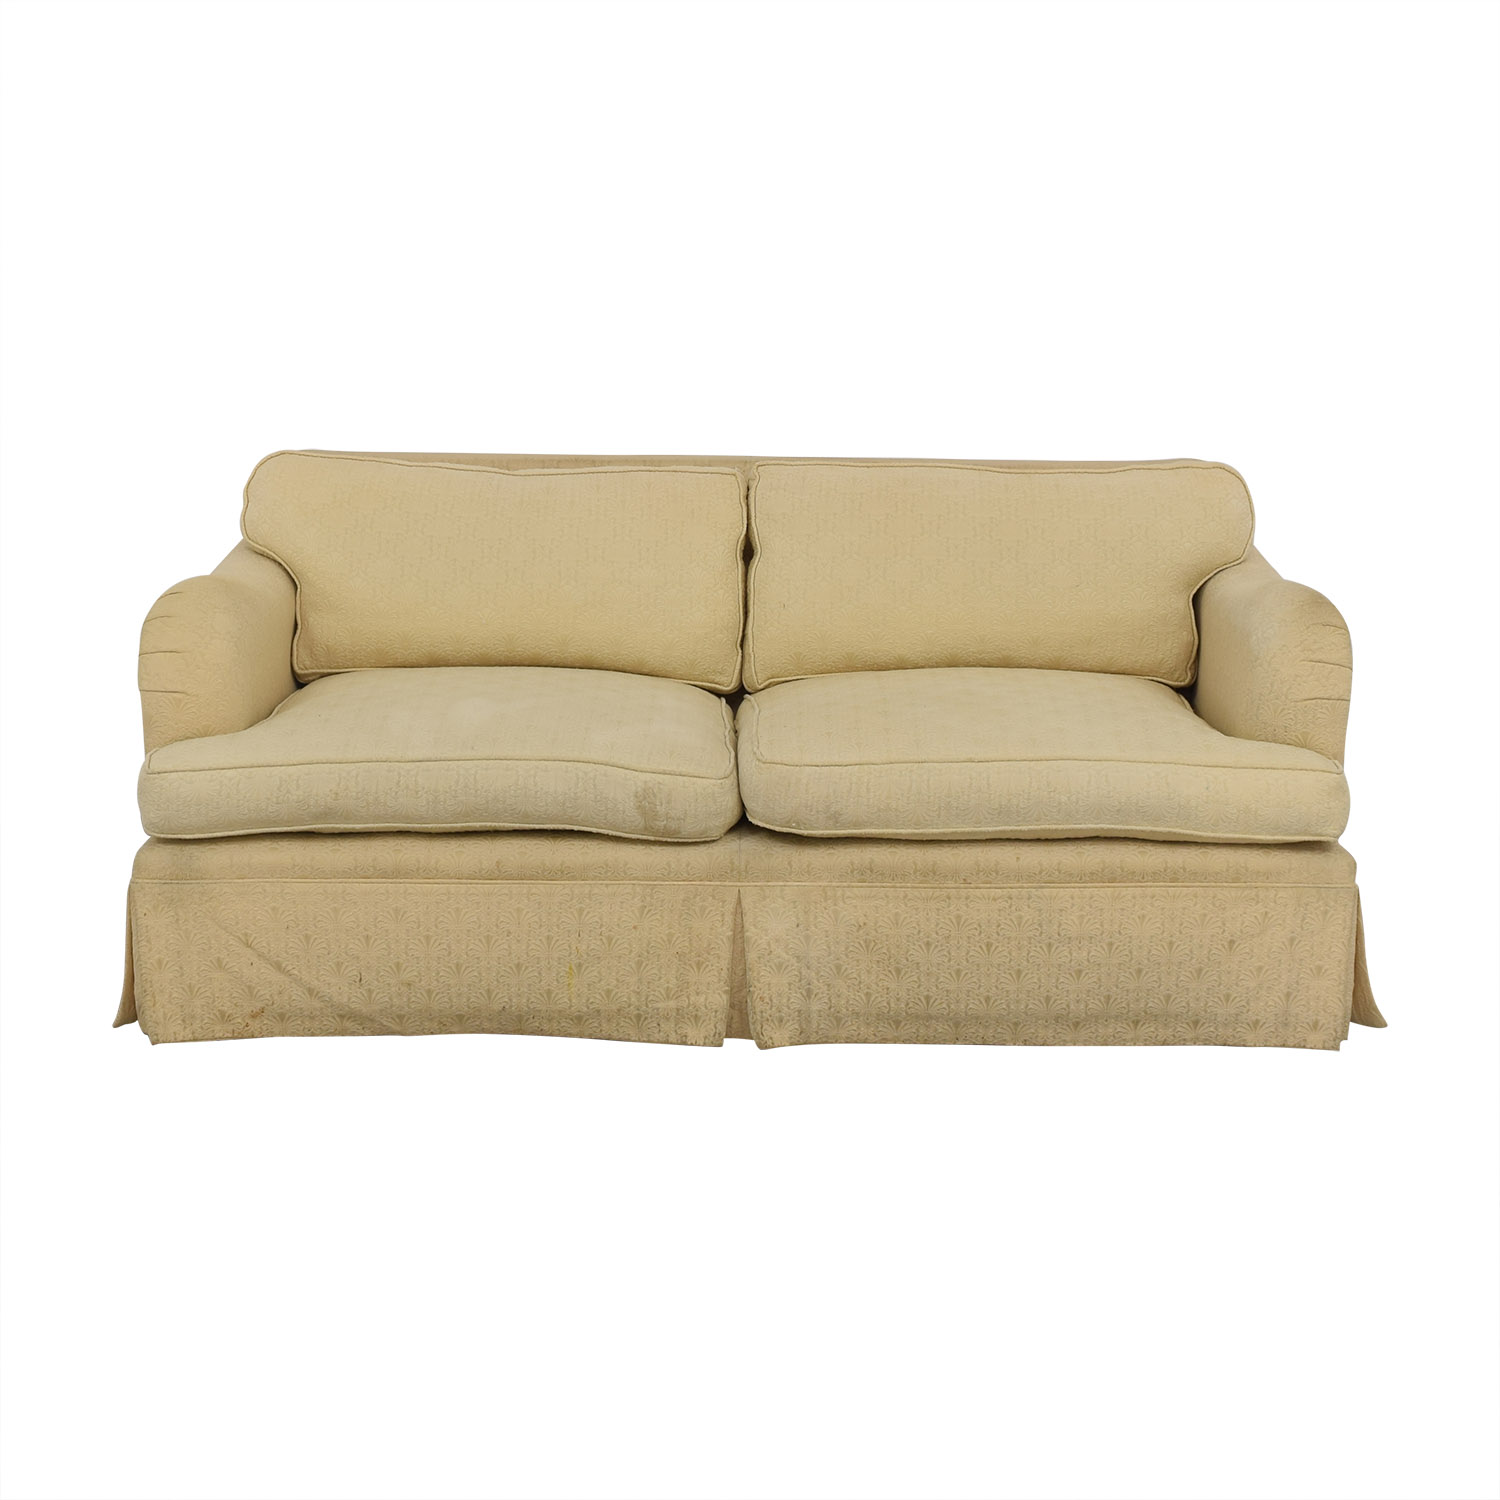 Classic Two Cushion Fabric Sofa discount